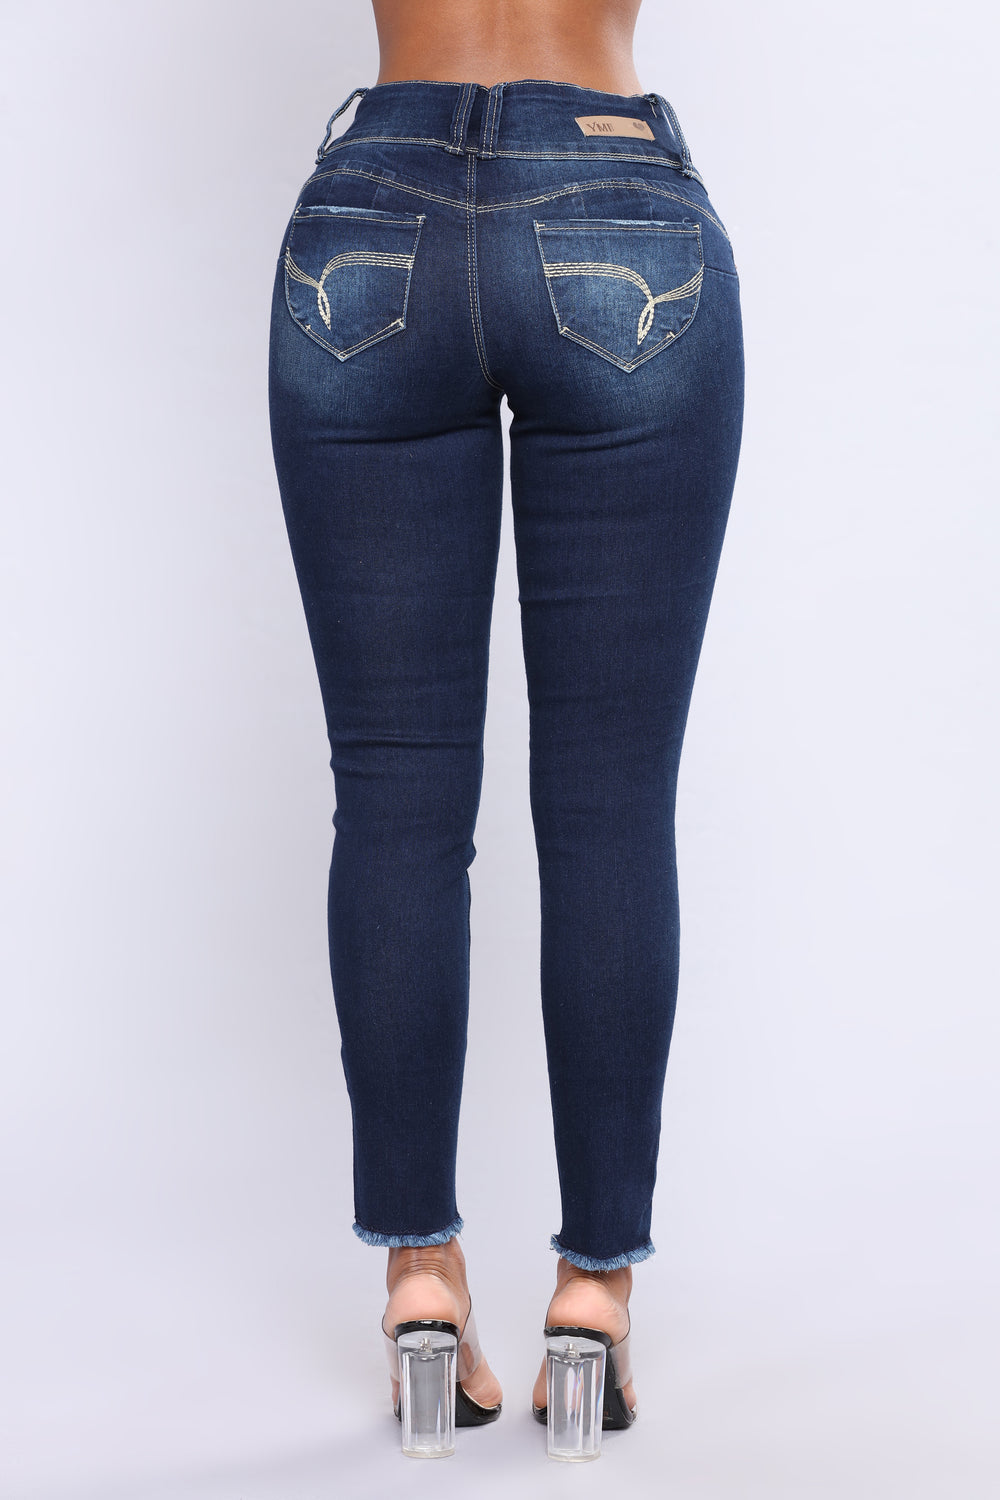 She Got A Donk Booty Lifting Jeans - Dark Denim